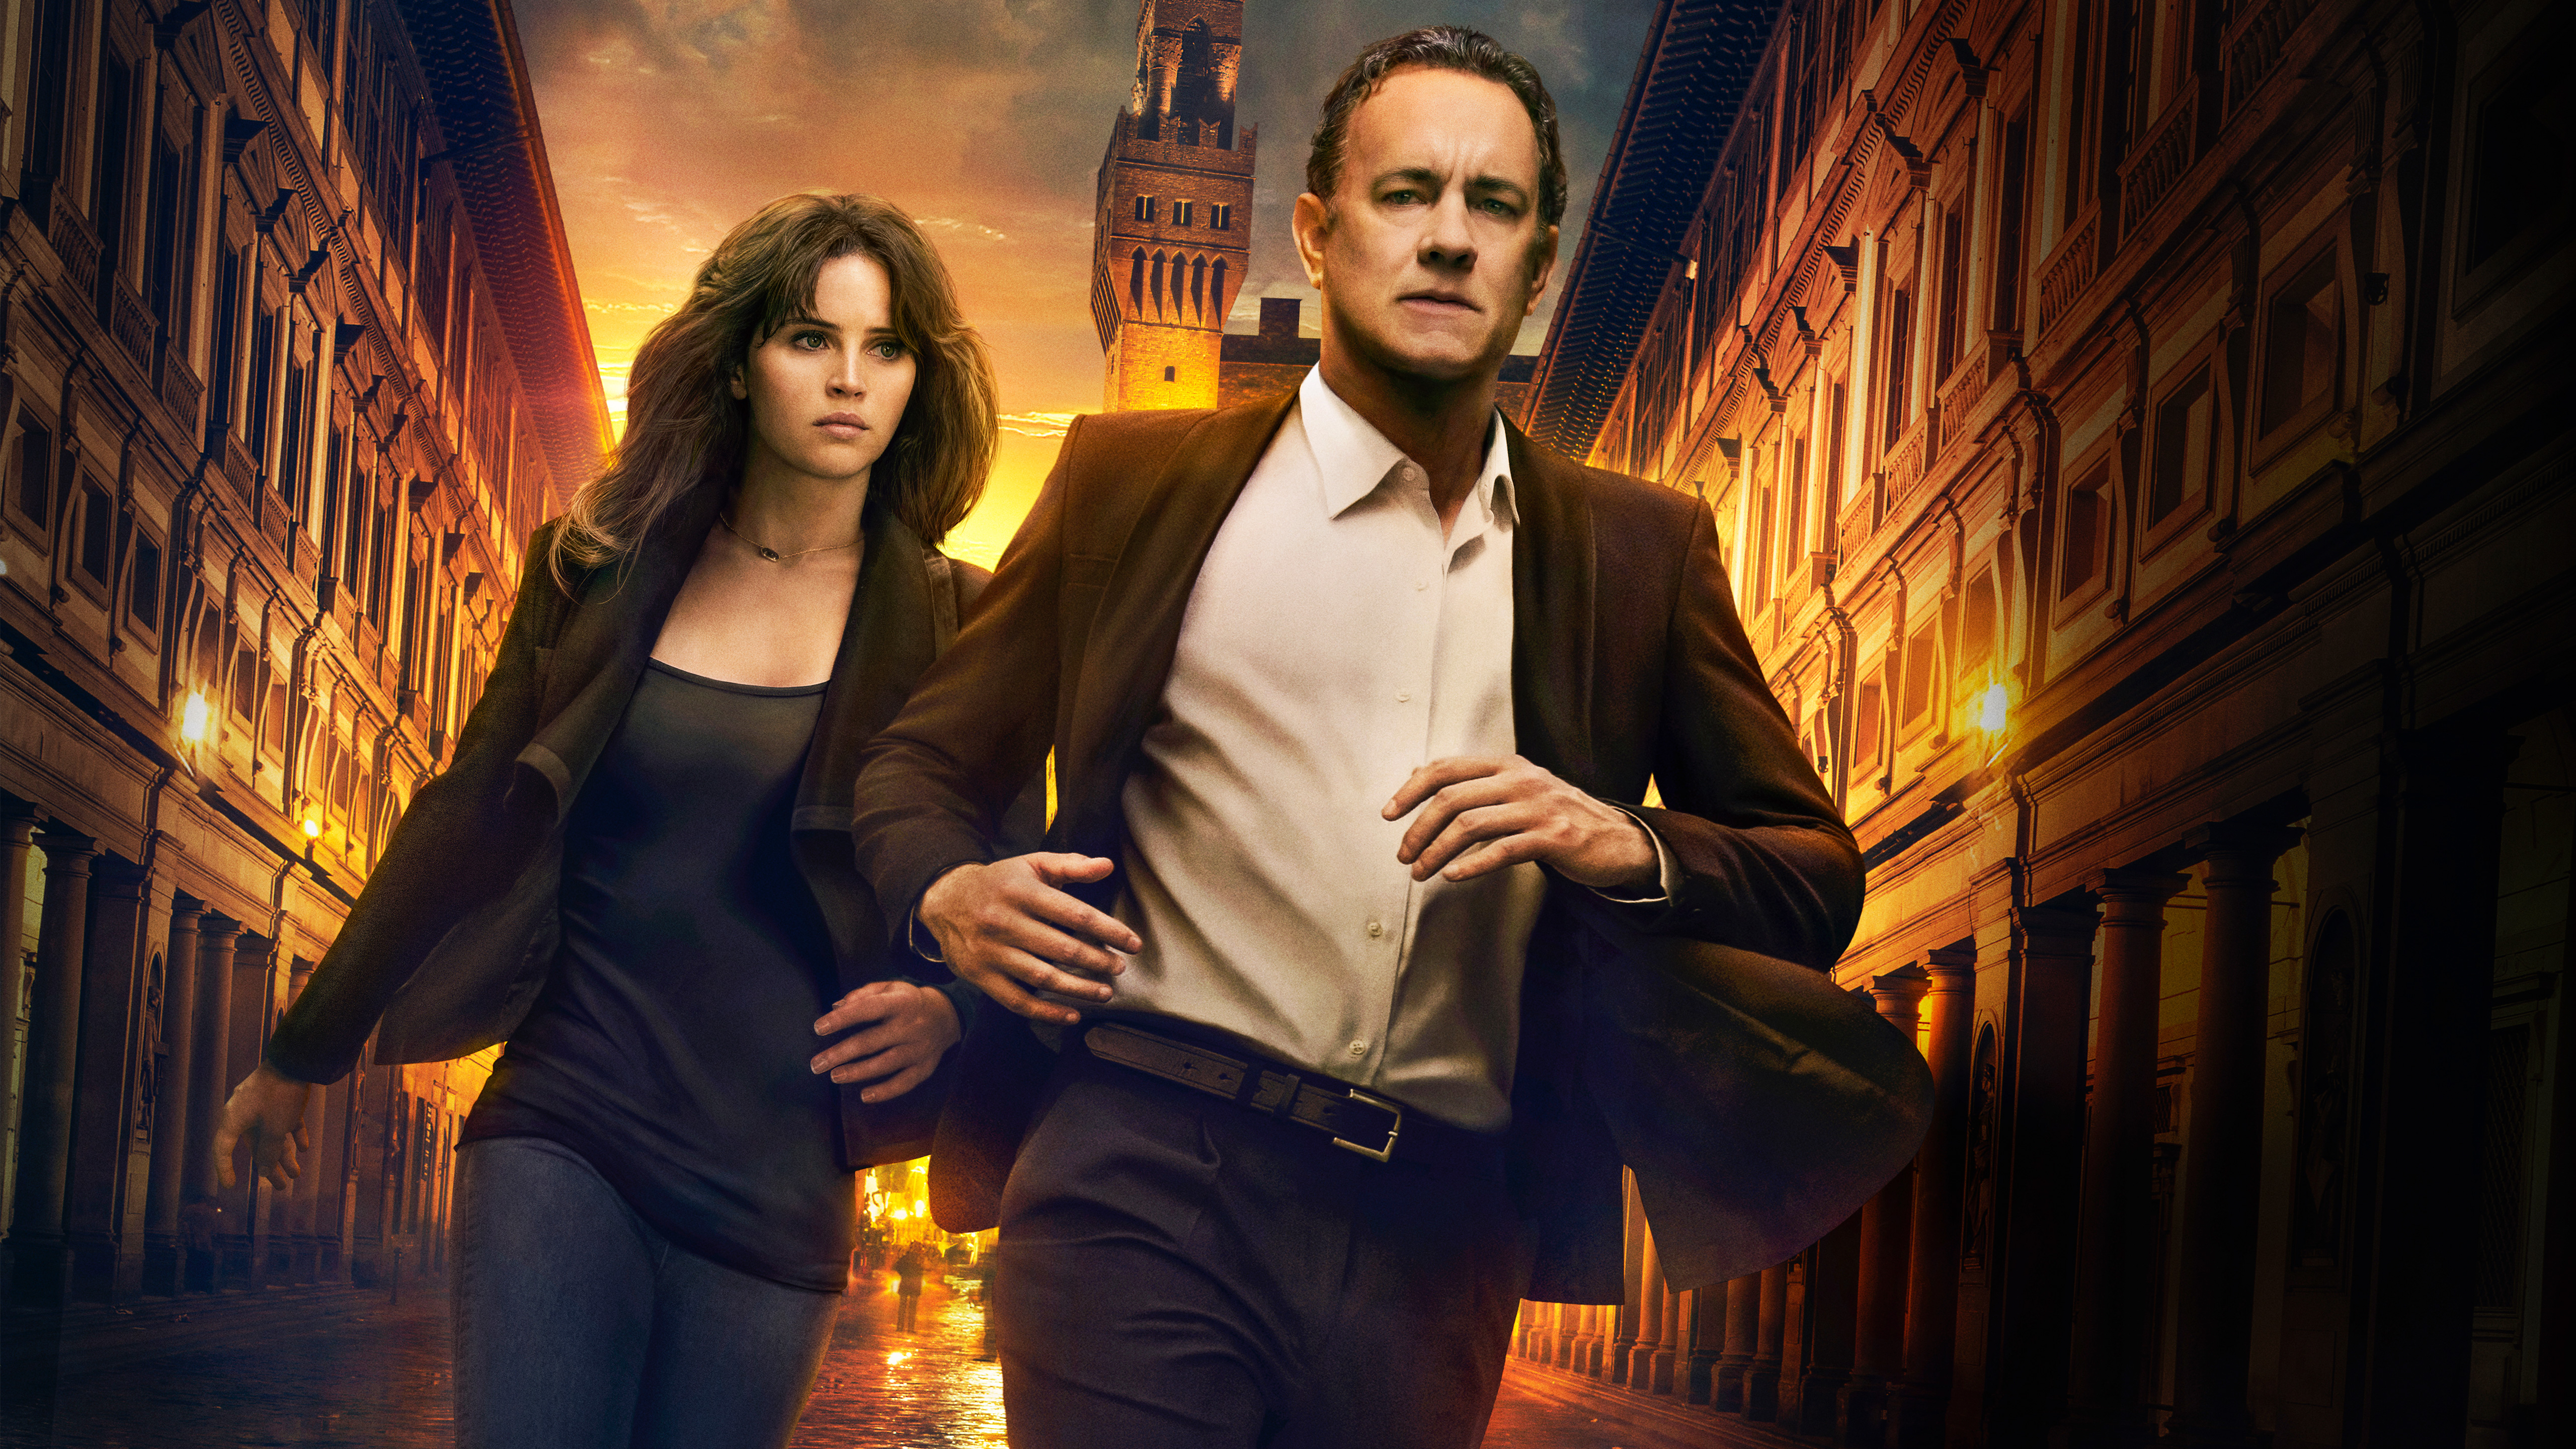 Inferno Tom Hanks Felicity Jones 5K wallpaper